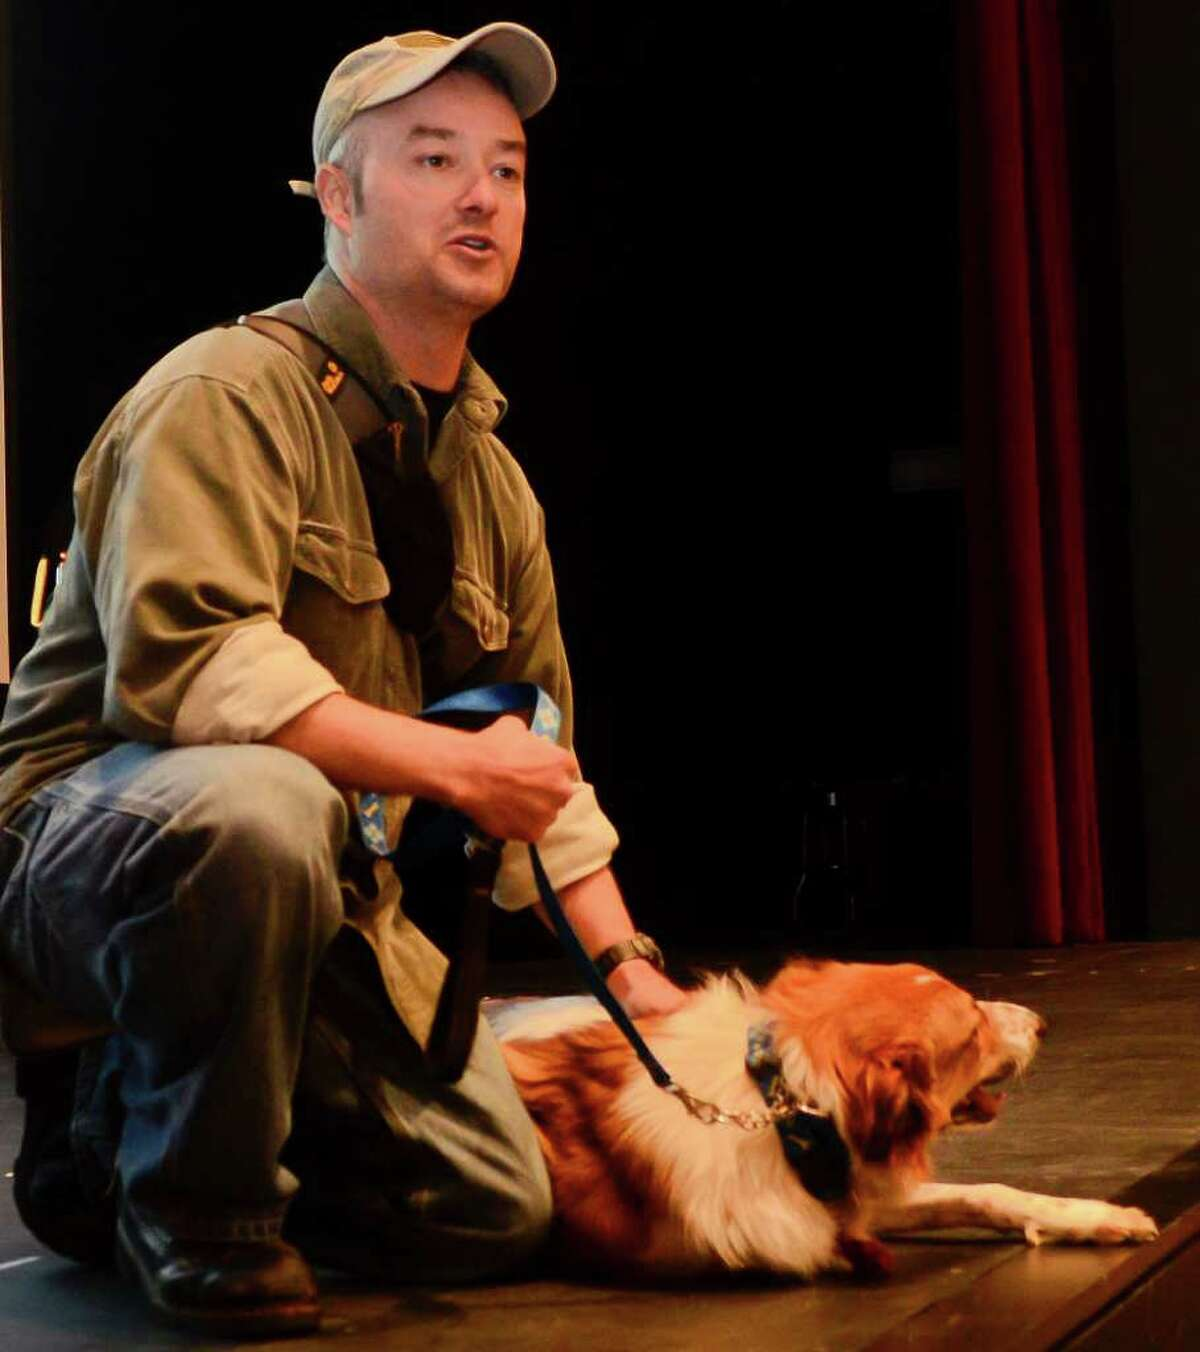 Captain Steve Johnston, New Fairfield, introduces Oso the dog to students at King Low Heywood Thomas School in Stamford, CT on Wednesday, November 9, 2011. Oso was rescued through the Baghdad Pups program, which helps U.S. troops safely transport home the companion animals they befriend in the war zone.